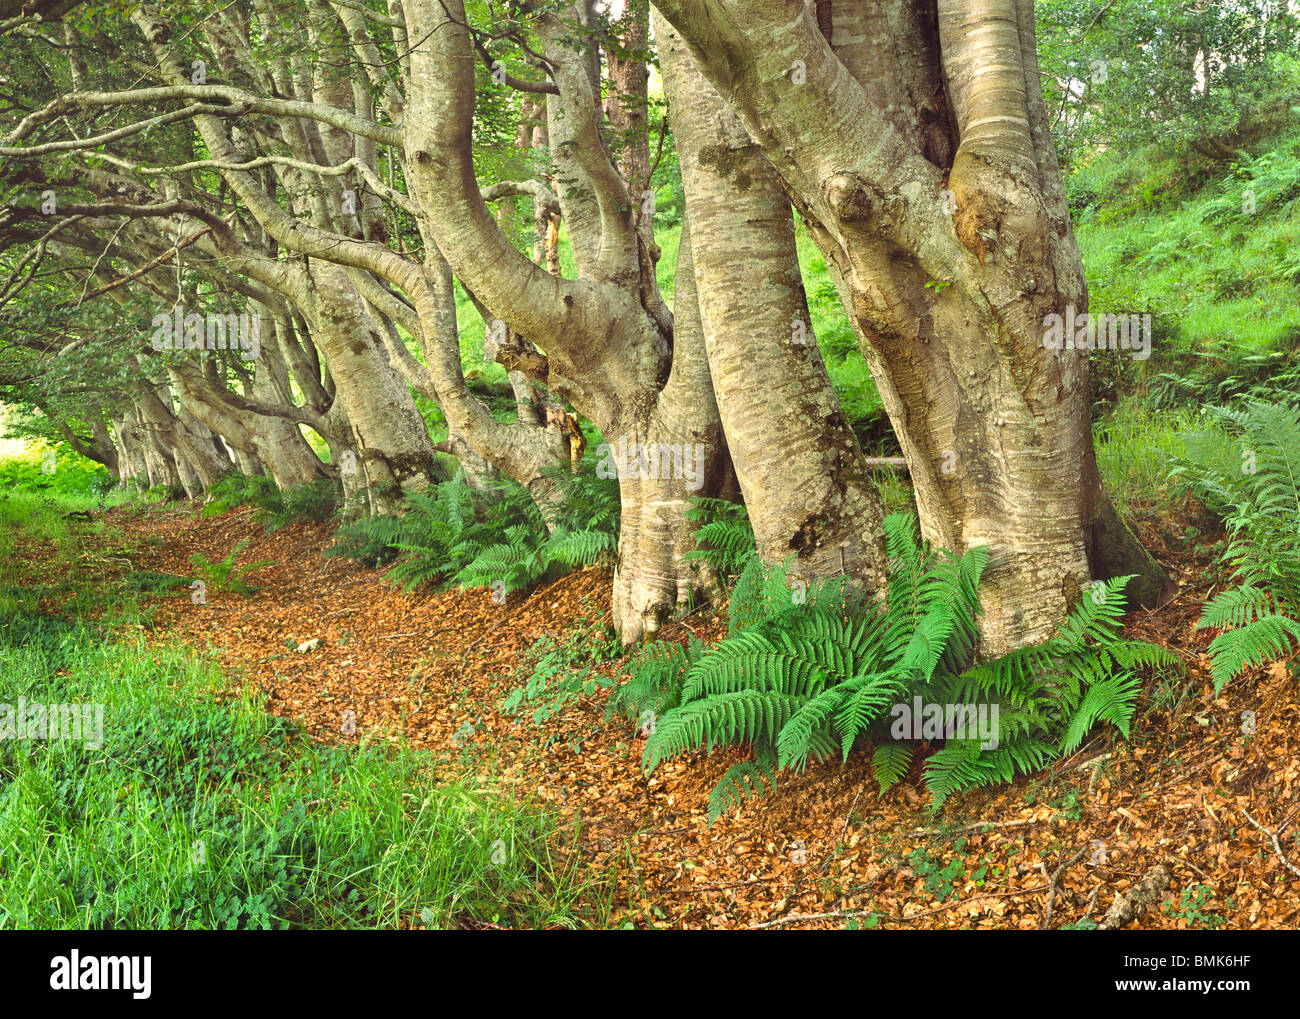 Summer Ferns in a Achmore Woodland - Stock Image